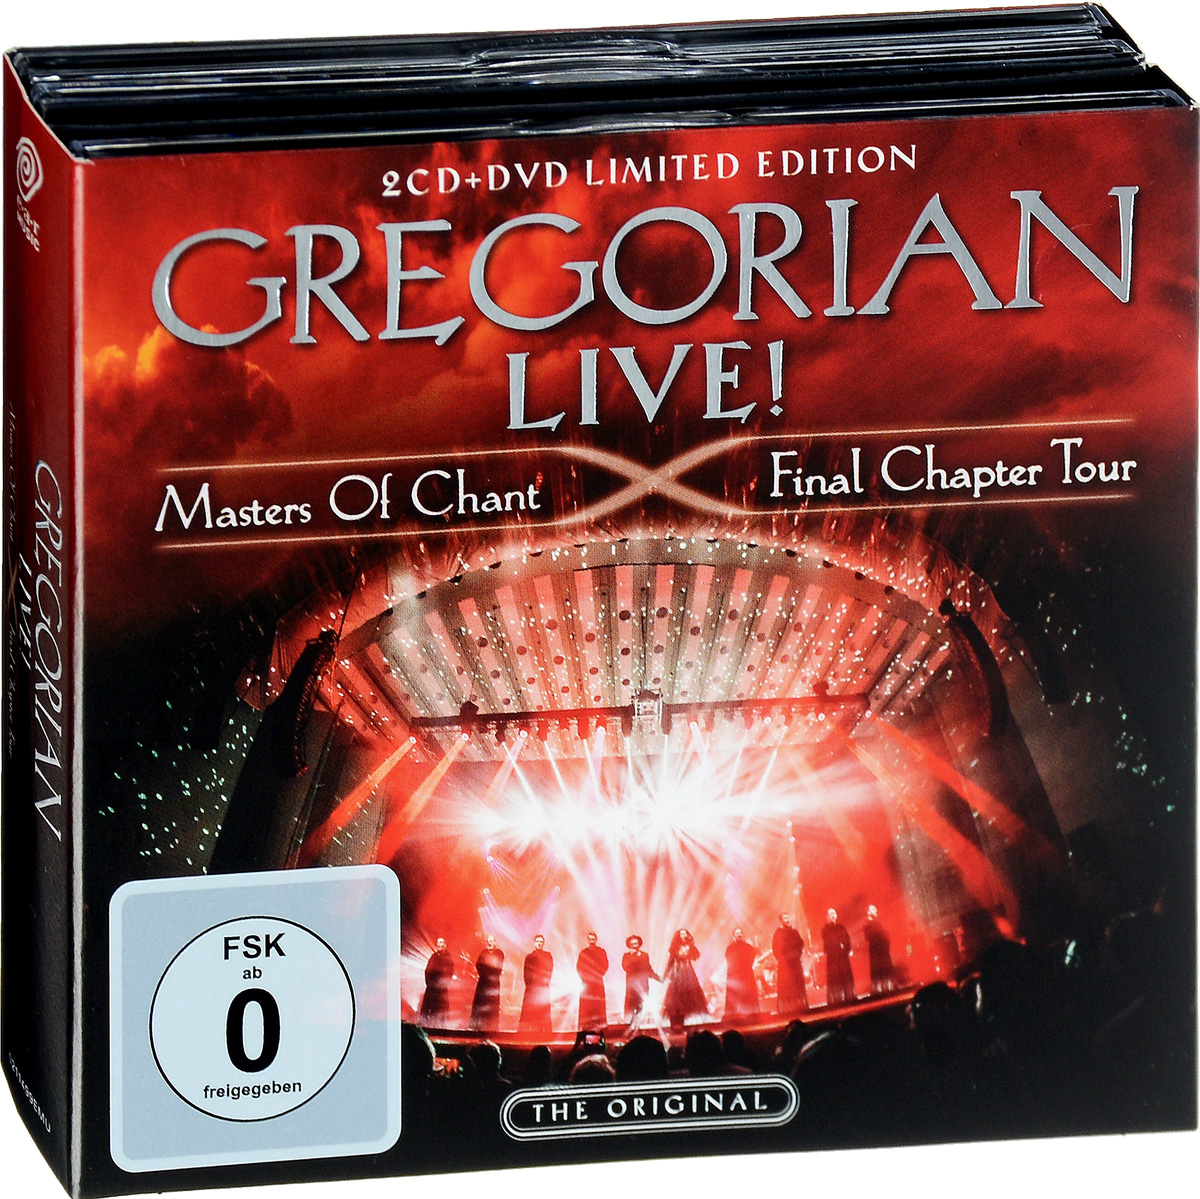 Gregorian Gregorian. Live! Masters Of Chant. Final Chapter Tour. Limited Edition (2 CD + DVD) цена